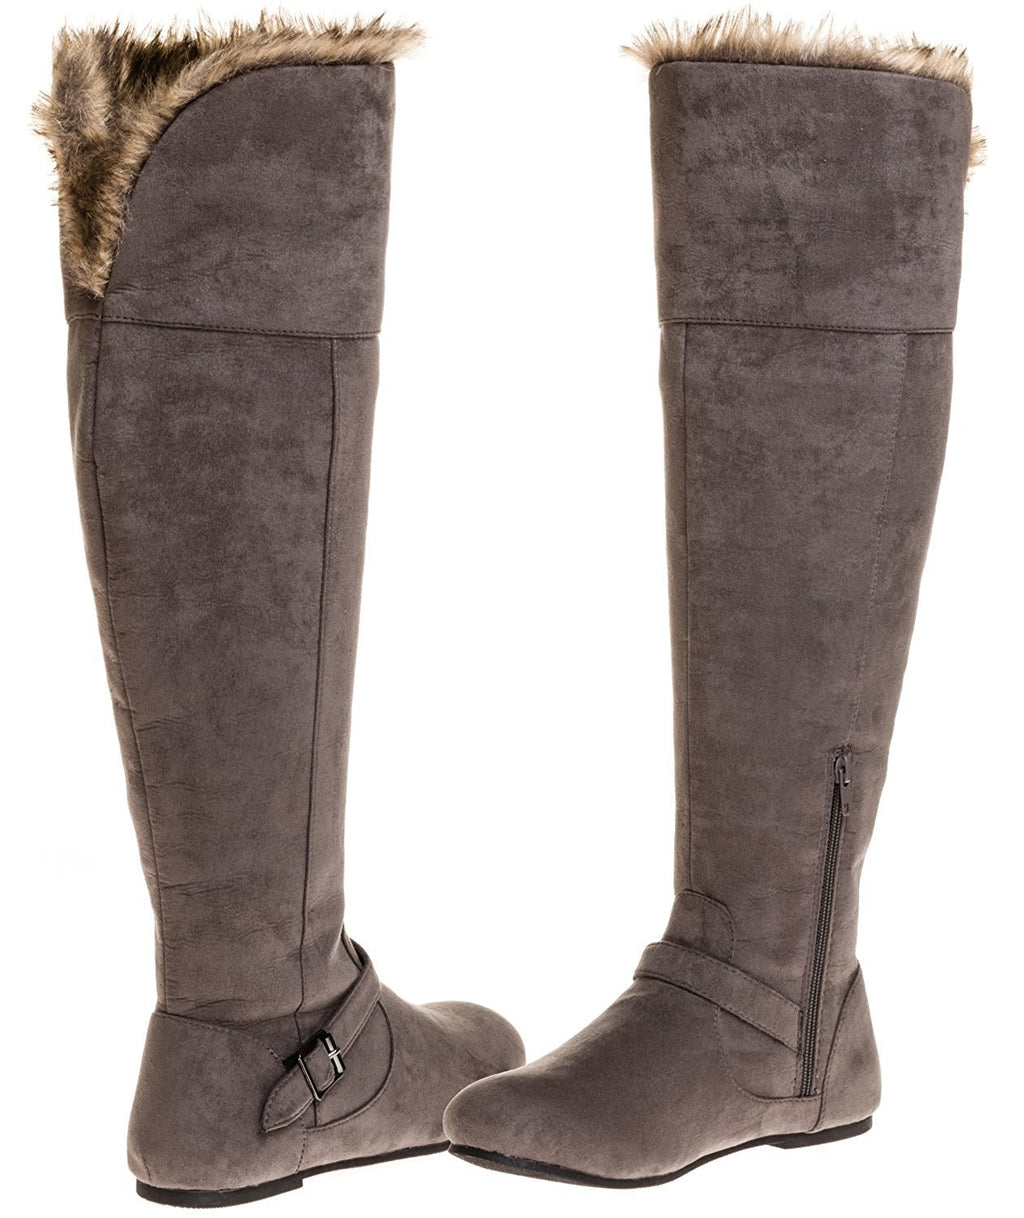 Sara Z Ladies Over The Knee Microsuede Fur Lined Boot (See More Colors & Sizes)